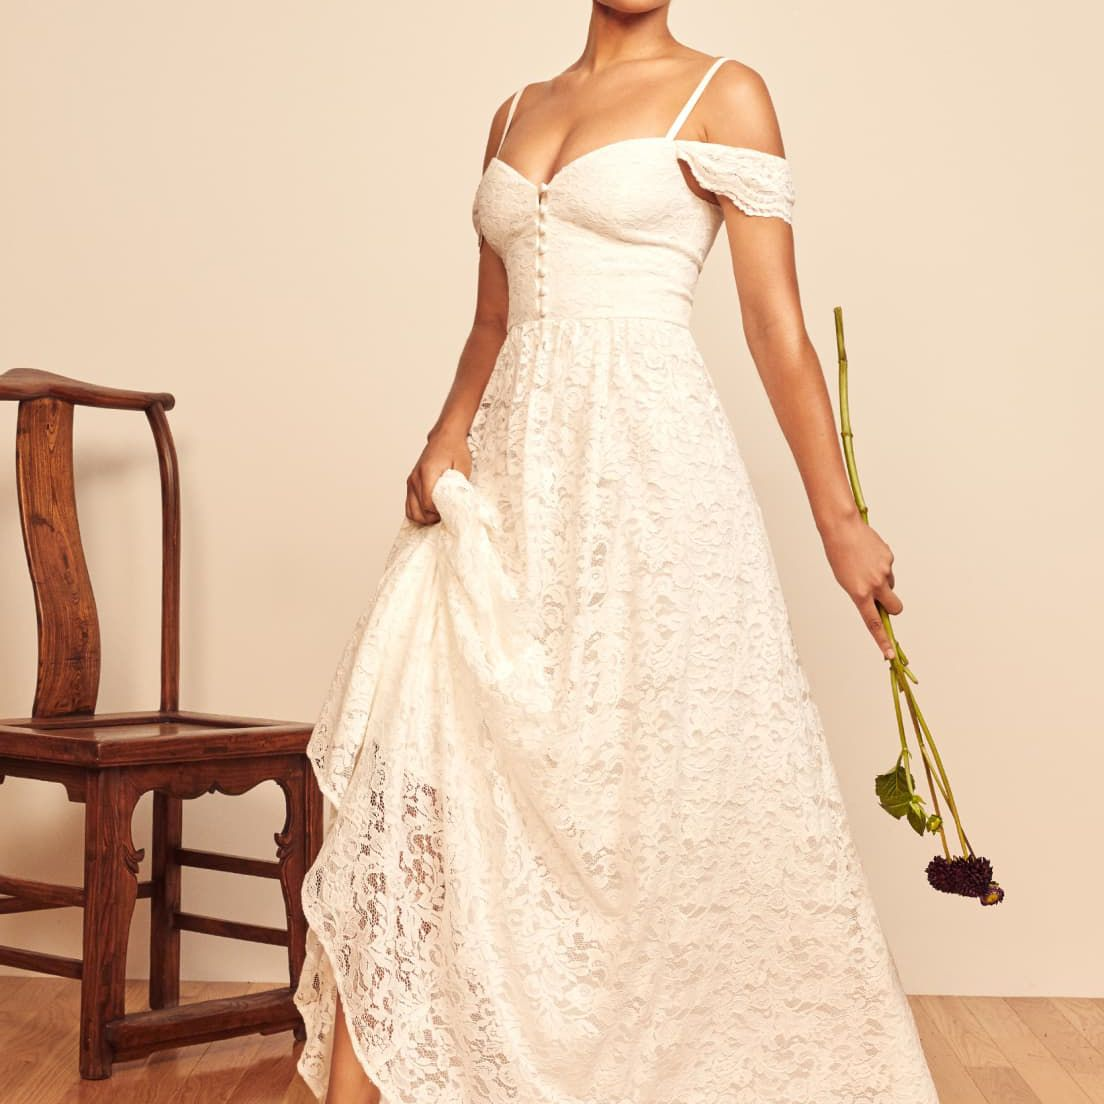 Model in off-the-shoulder all-over lace white gown